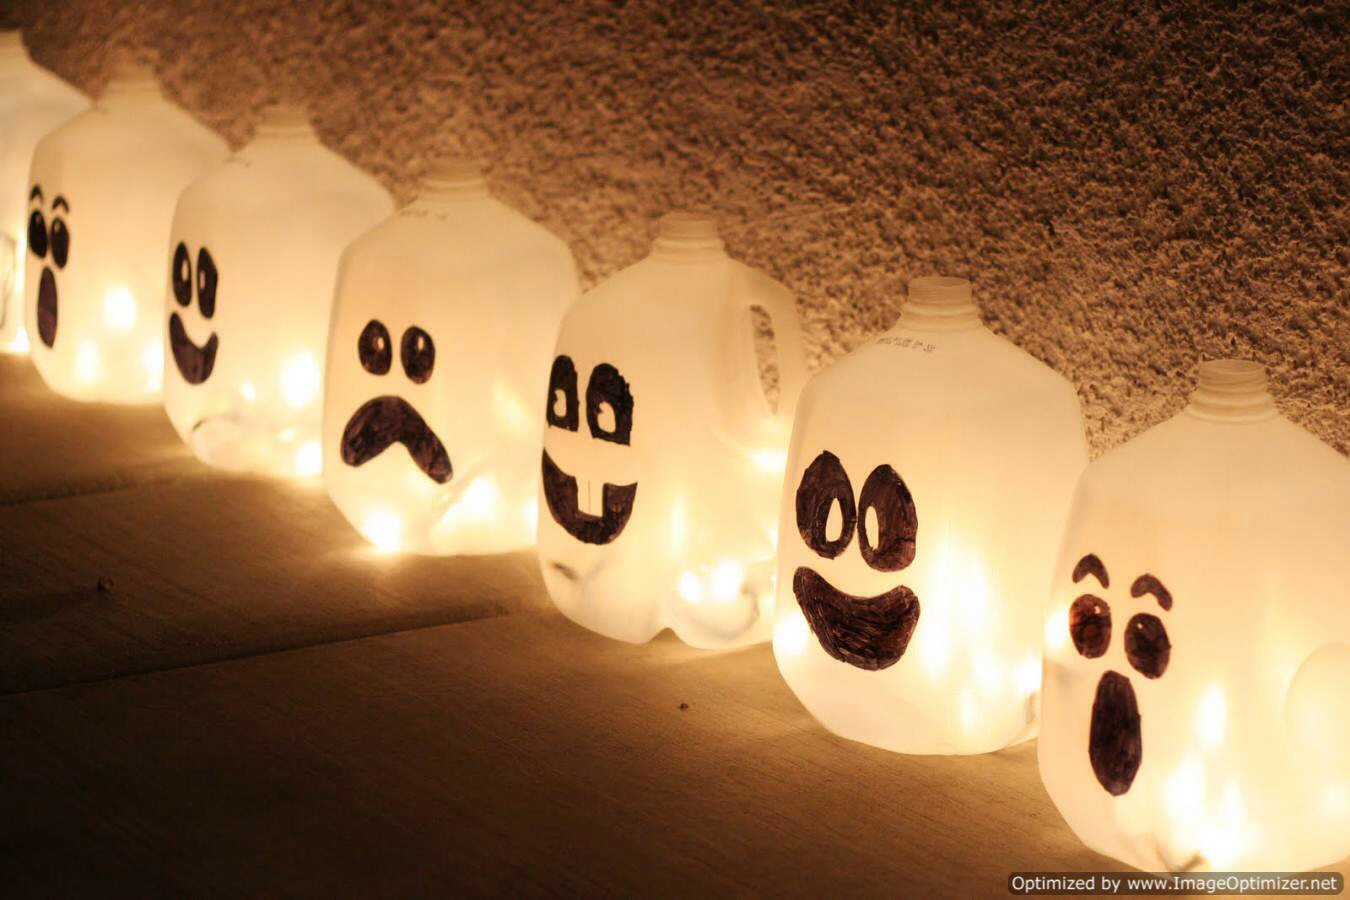 SO SIMPLE BUT SO CUTE!🔻 Supplies: lots of milk jugs, Christmas lights, black sharpie How to: draw a face or decorate the milk jug your own personal way, cut 2 holes on either side of the jug, string the Christmas lights throught the jugs